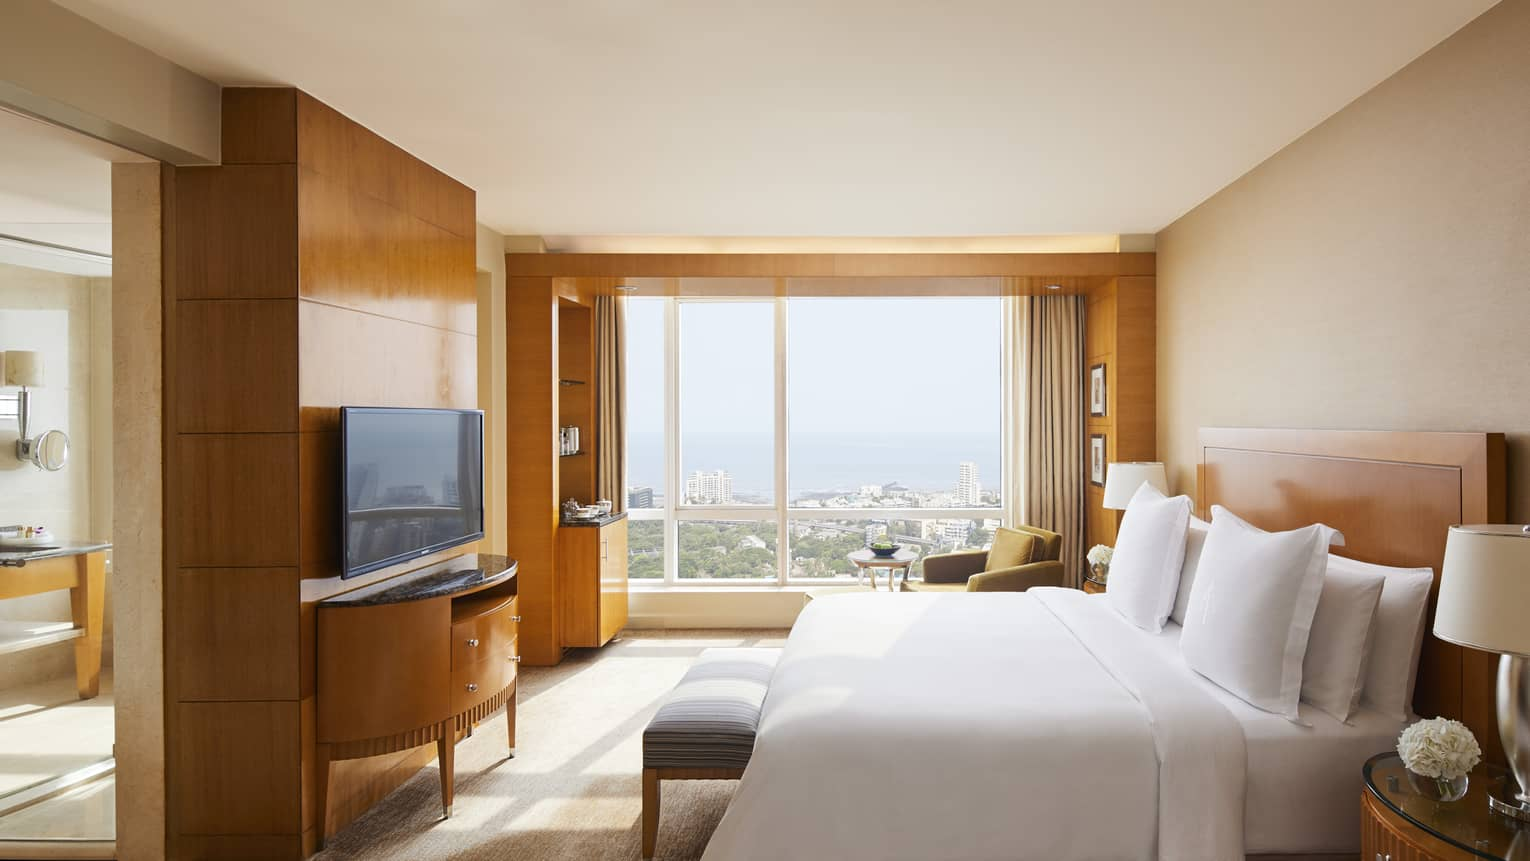 Deluxe room with natural light coming in and a view of the Mumbai skyline